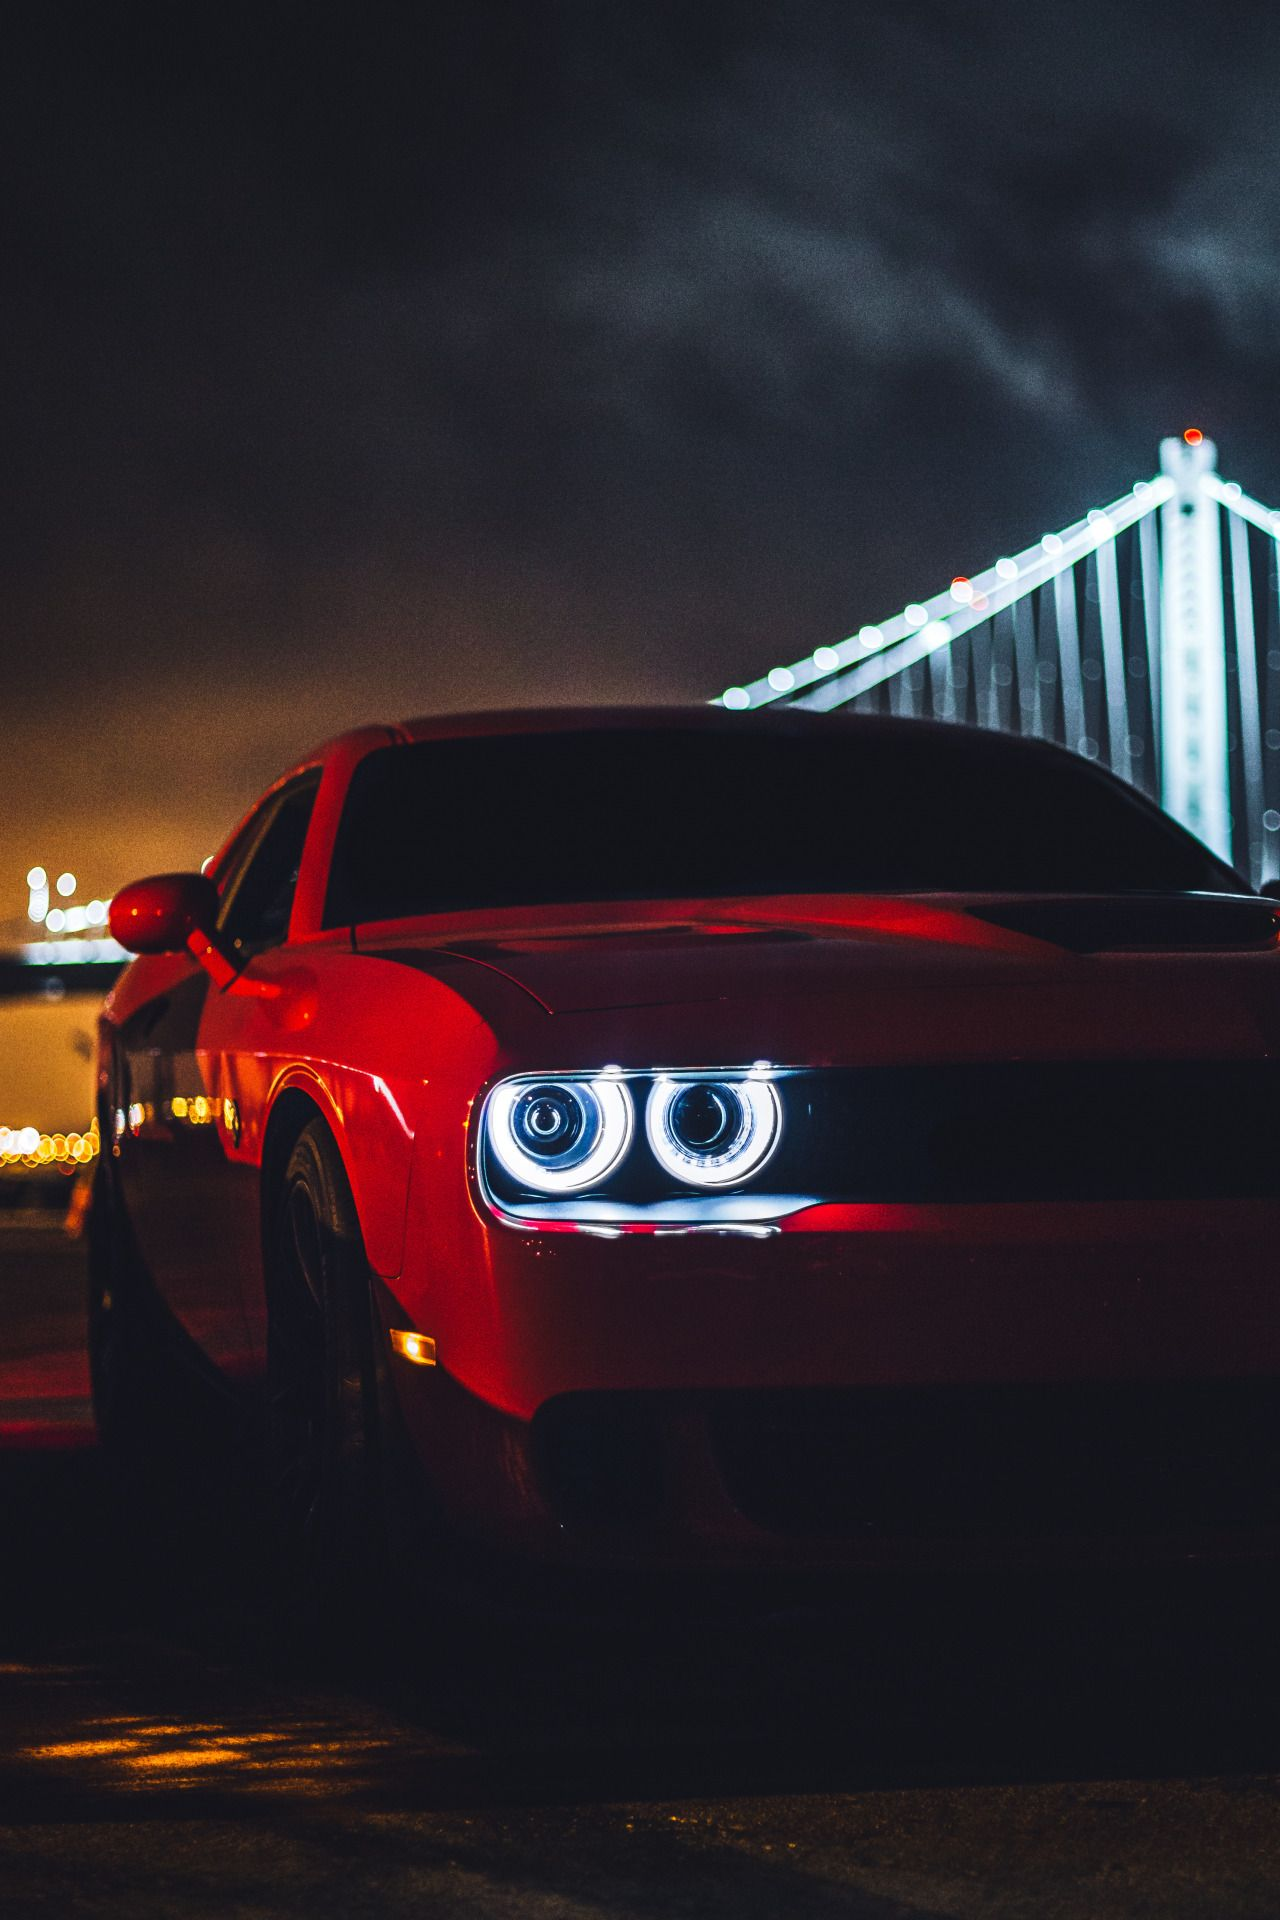 2017 Dodge Challenger 2013 Dodge Challenger Dodge Demon Wallpaper Phone 344113 Hd Wallpaper Backgrounds Download